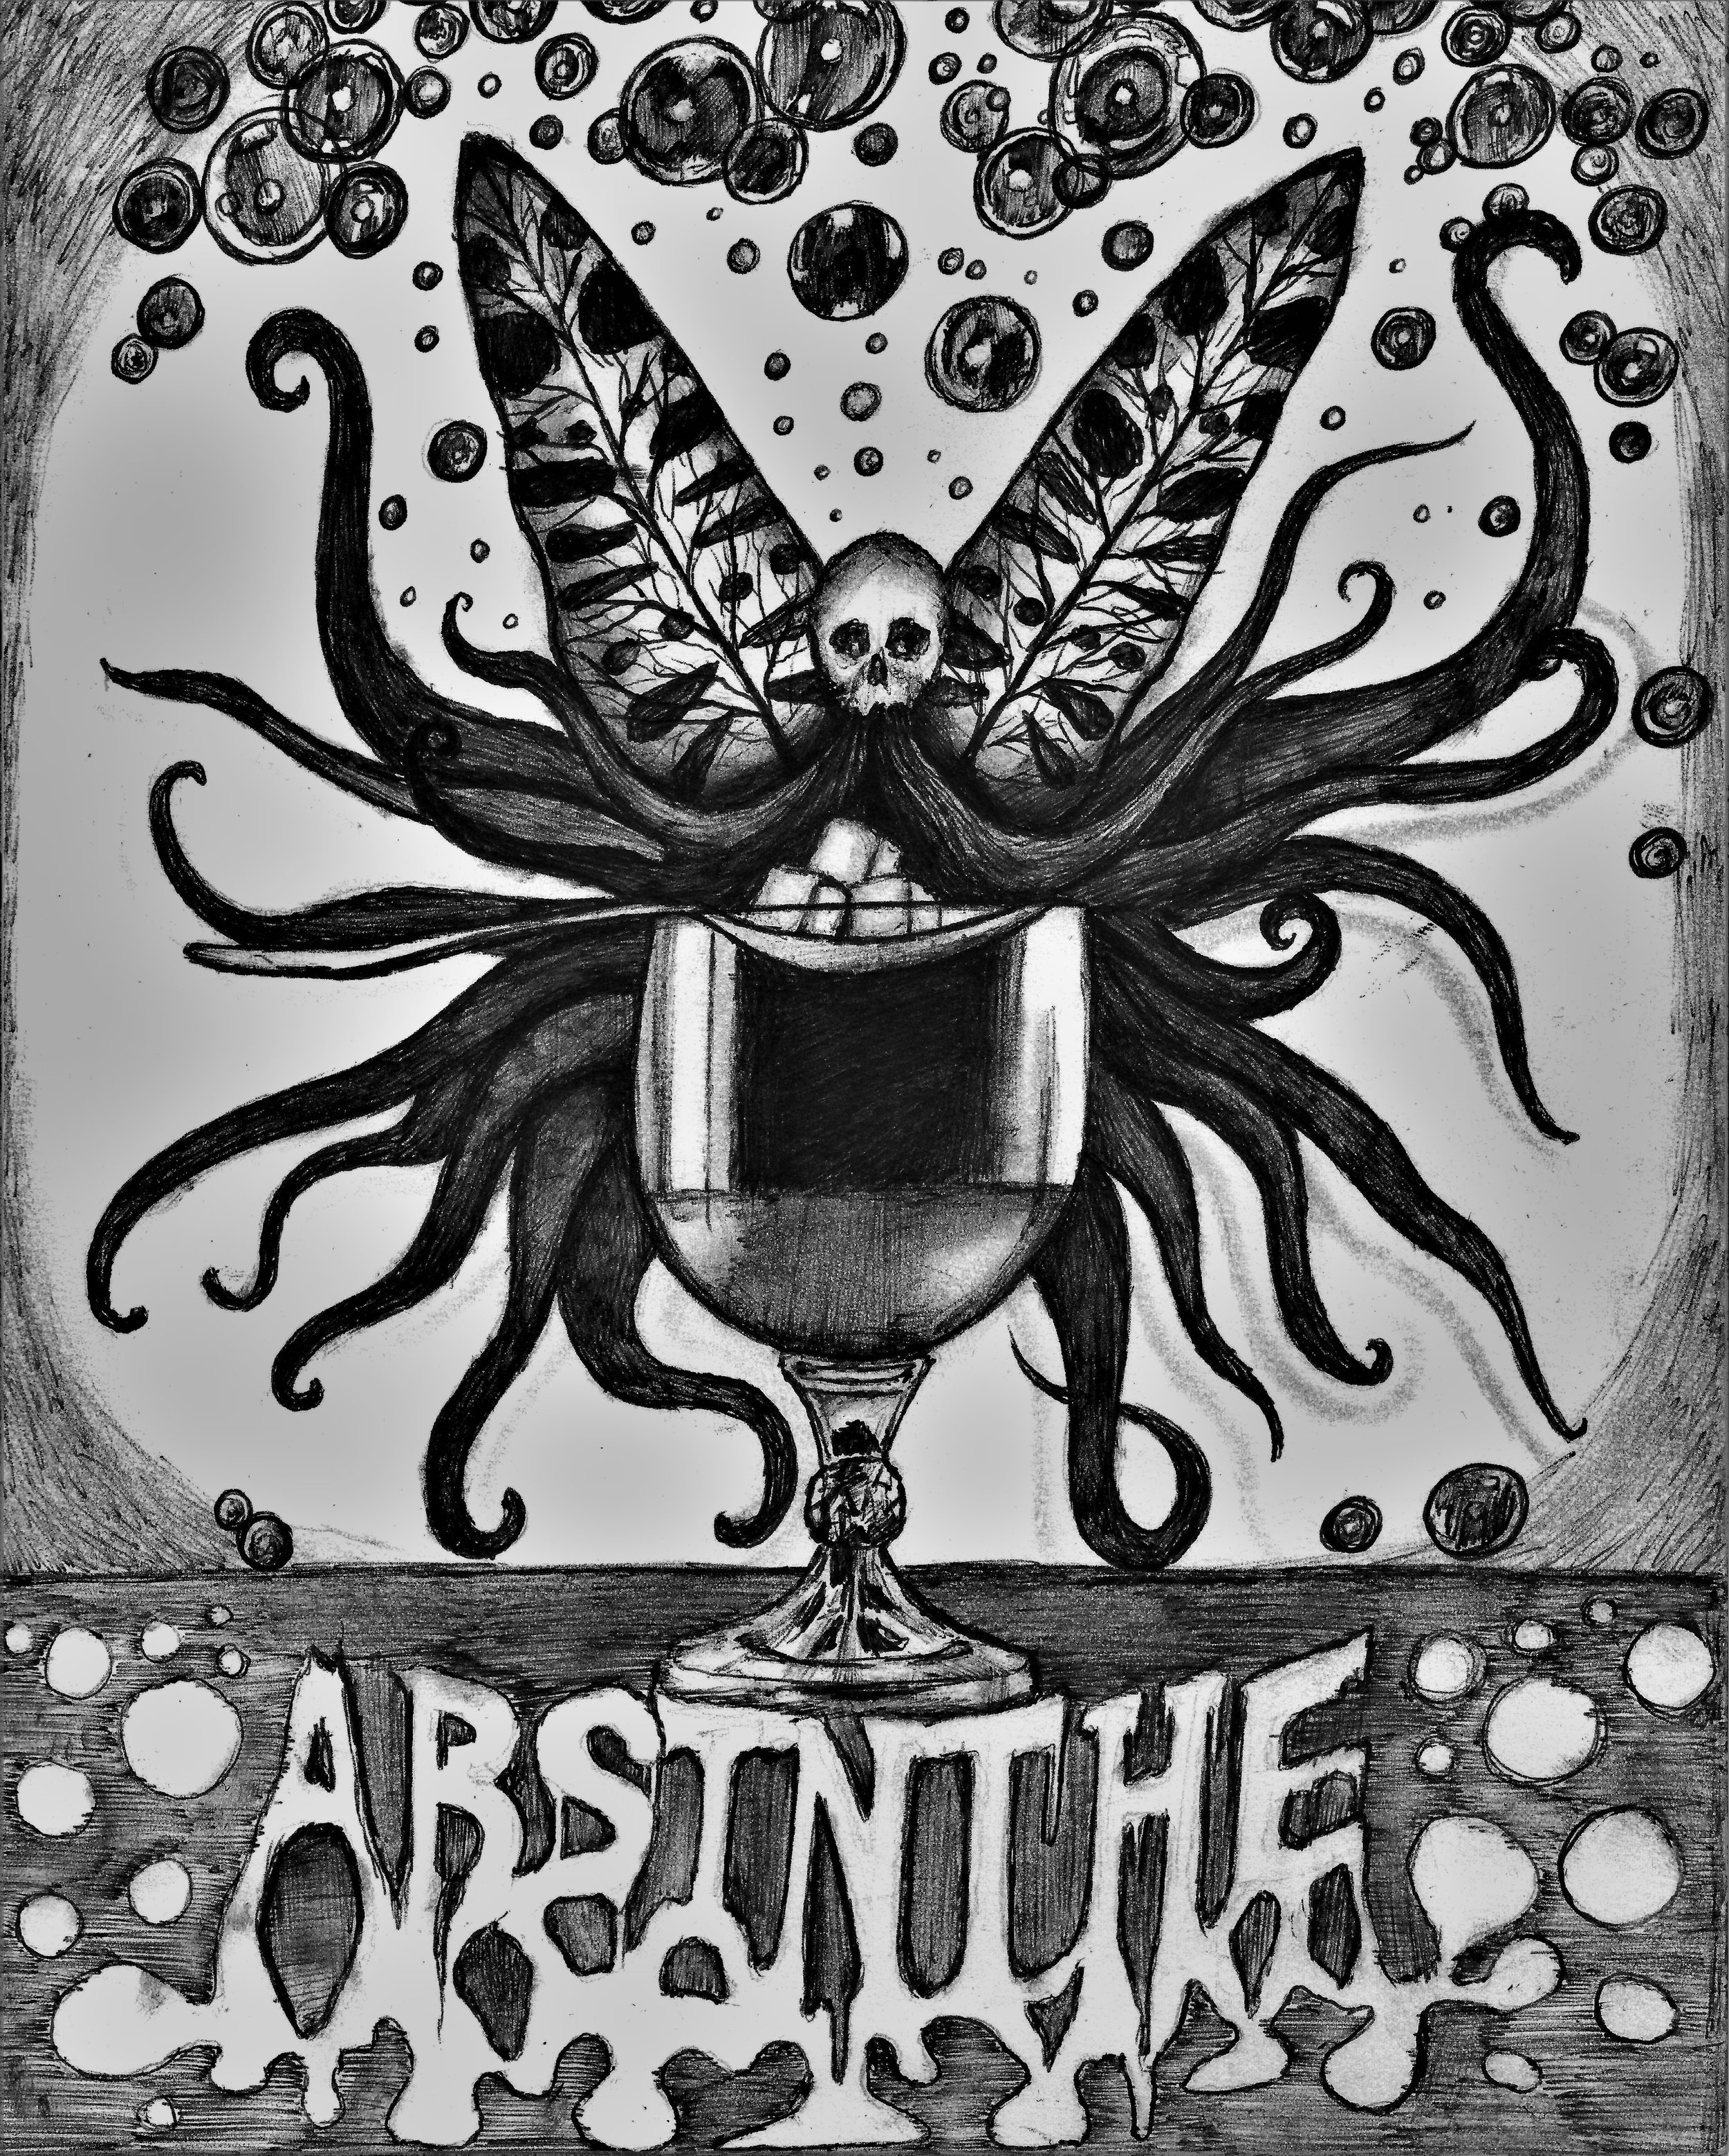 (Absinthe) pen on paper